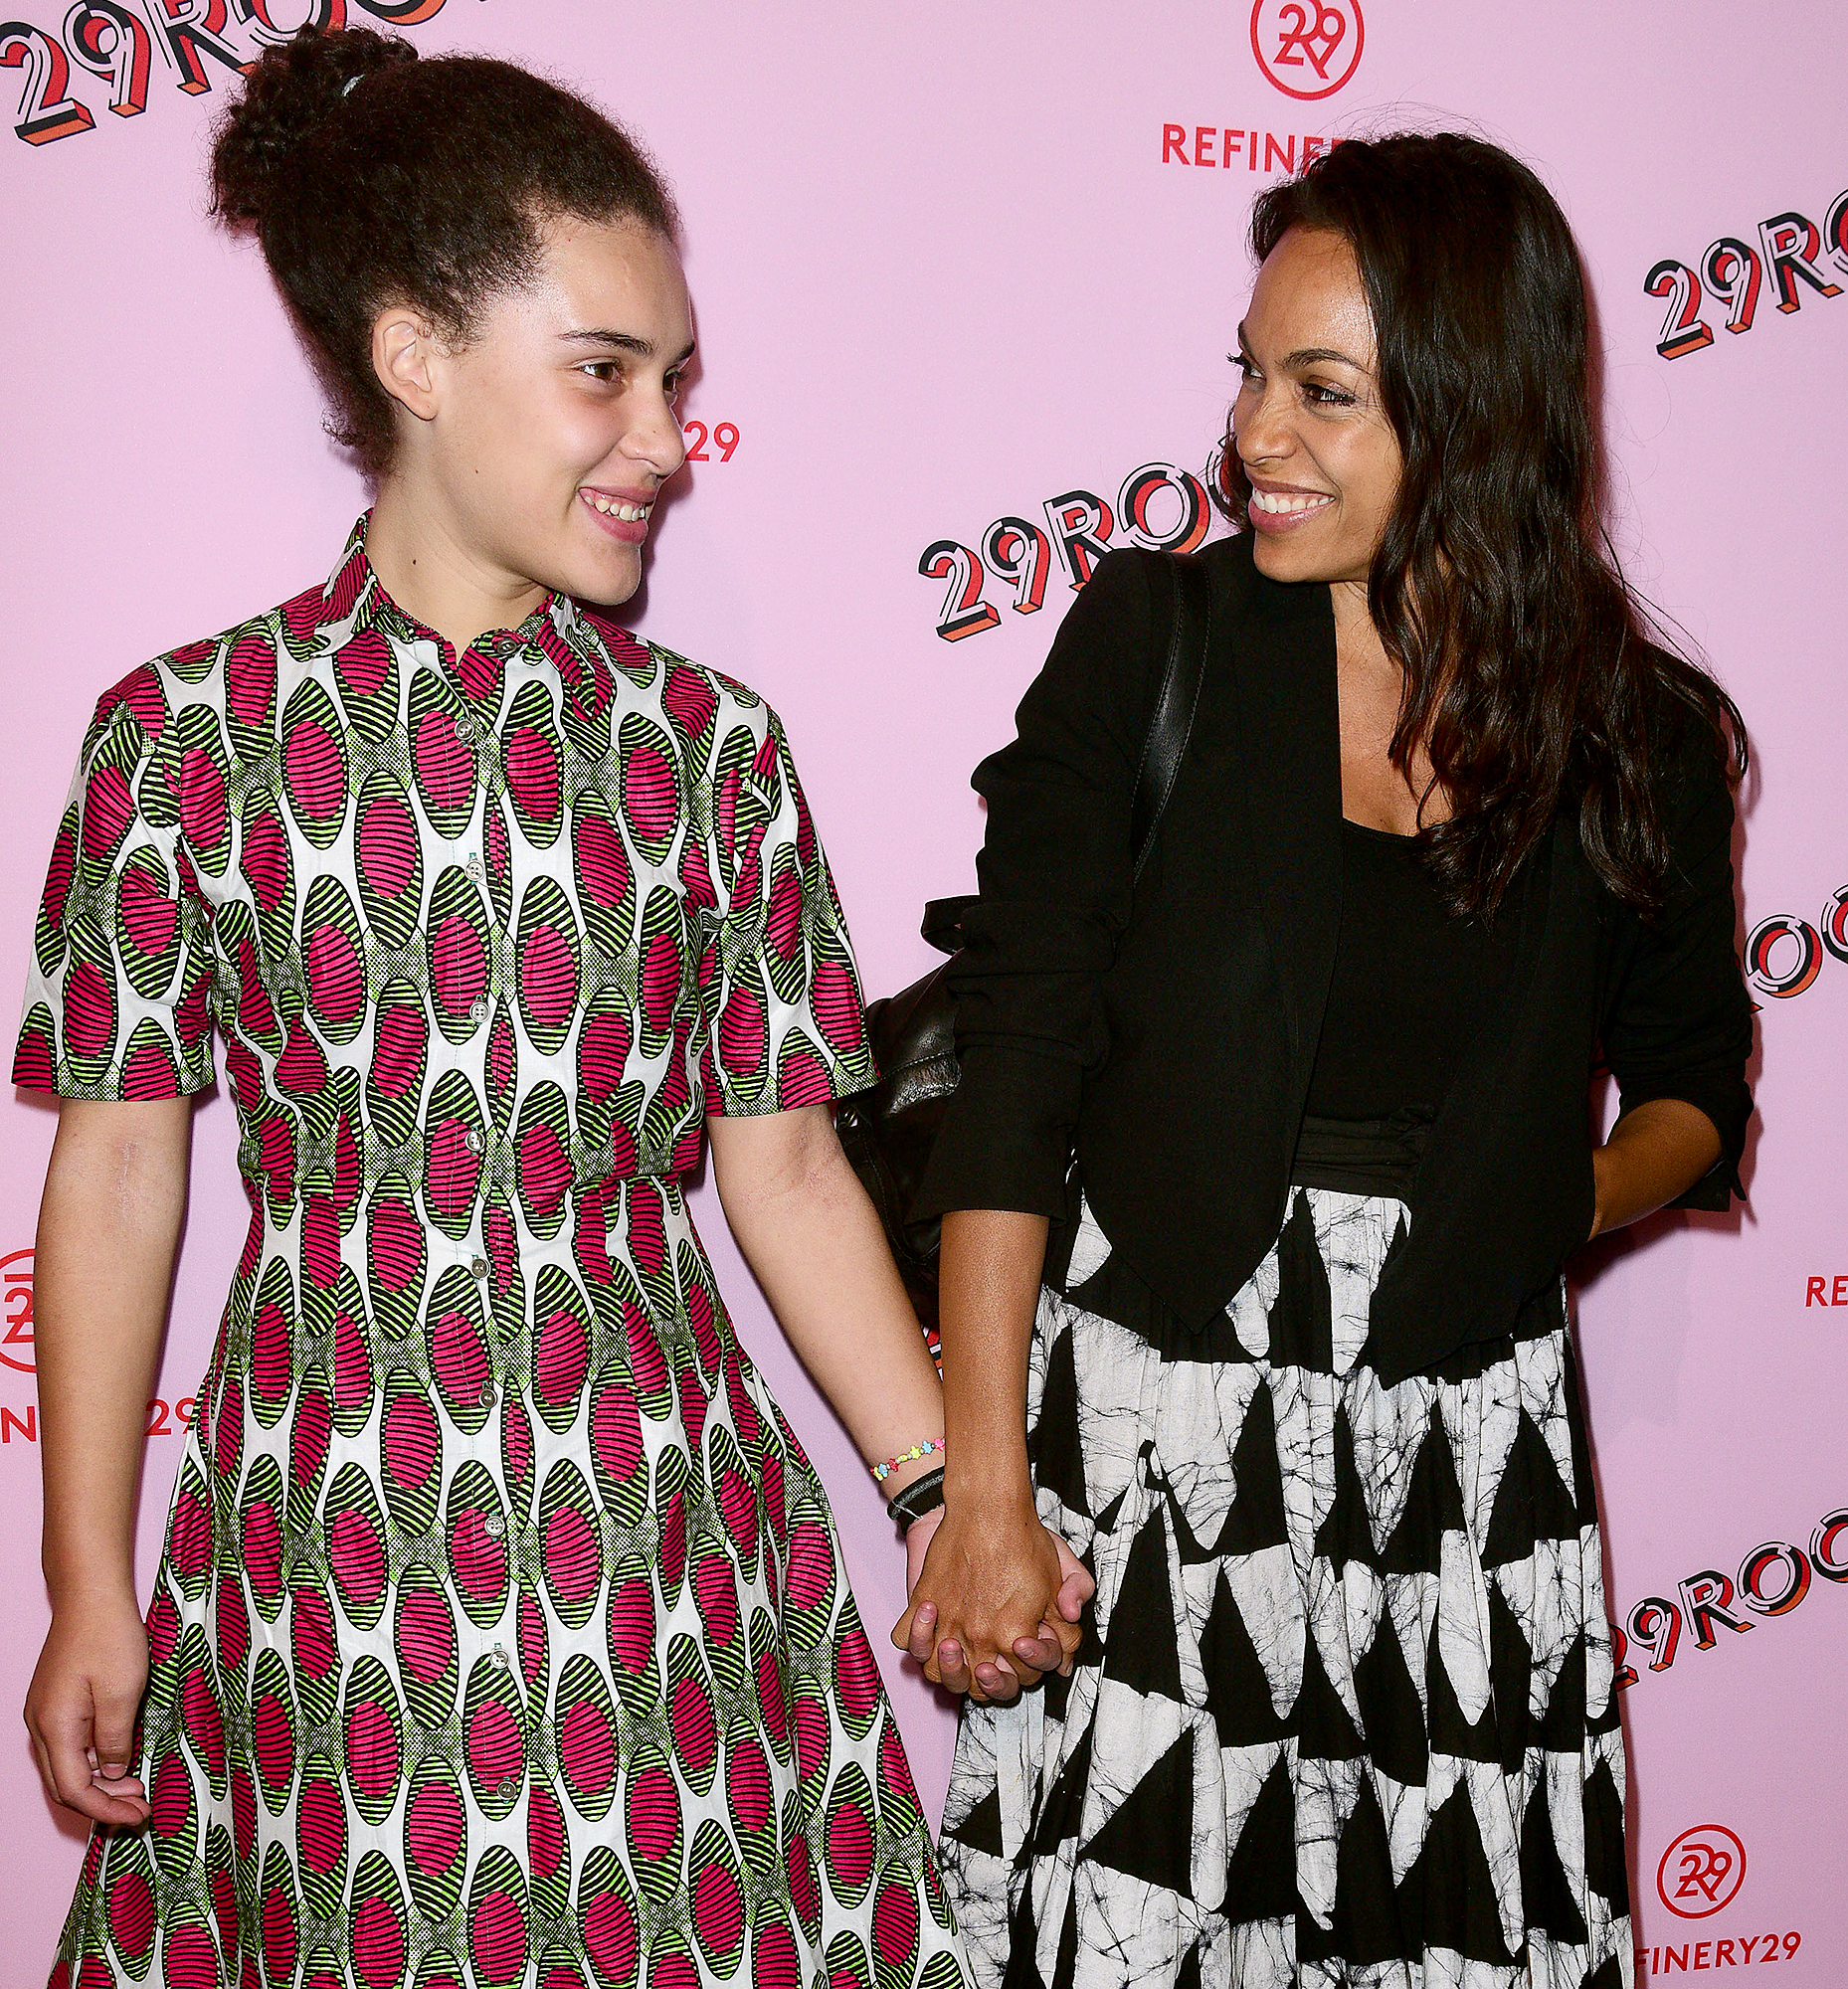 """Rosario-Dawson-daughter-lola - Rosario Dawson and daughter Lola attend Refinery29's """"29Rooms: Turn It Into Art"""" at 106 Wythe Ave on September 7, 2017 in New York City."""